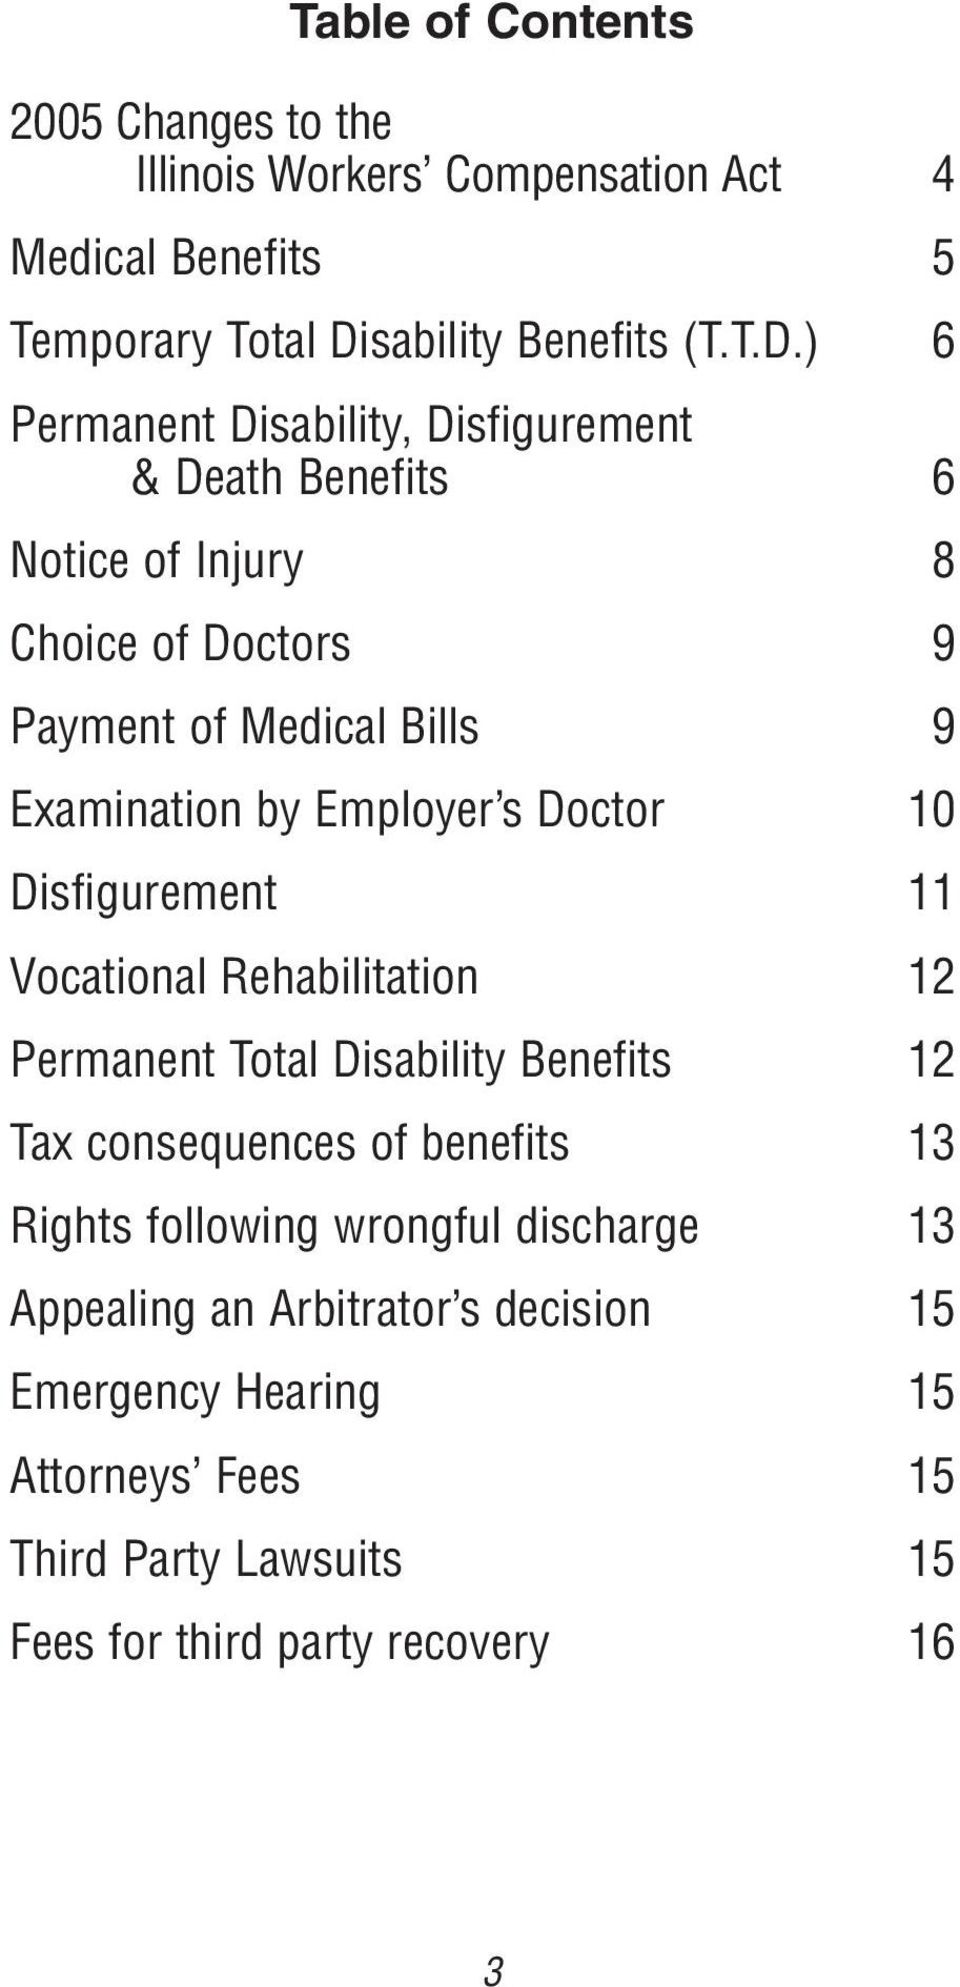 ) 6 Permanent Disability, Disfigurement & Death Benefits 6 Notice of Injury 8 Choice of Doctors 9 Payment of Medical Bills 9 Examination by